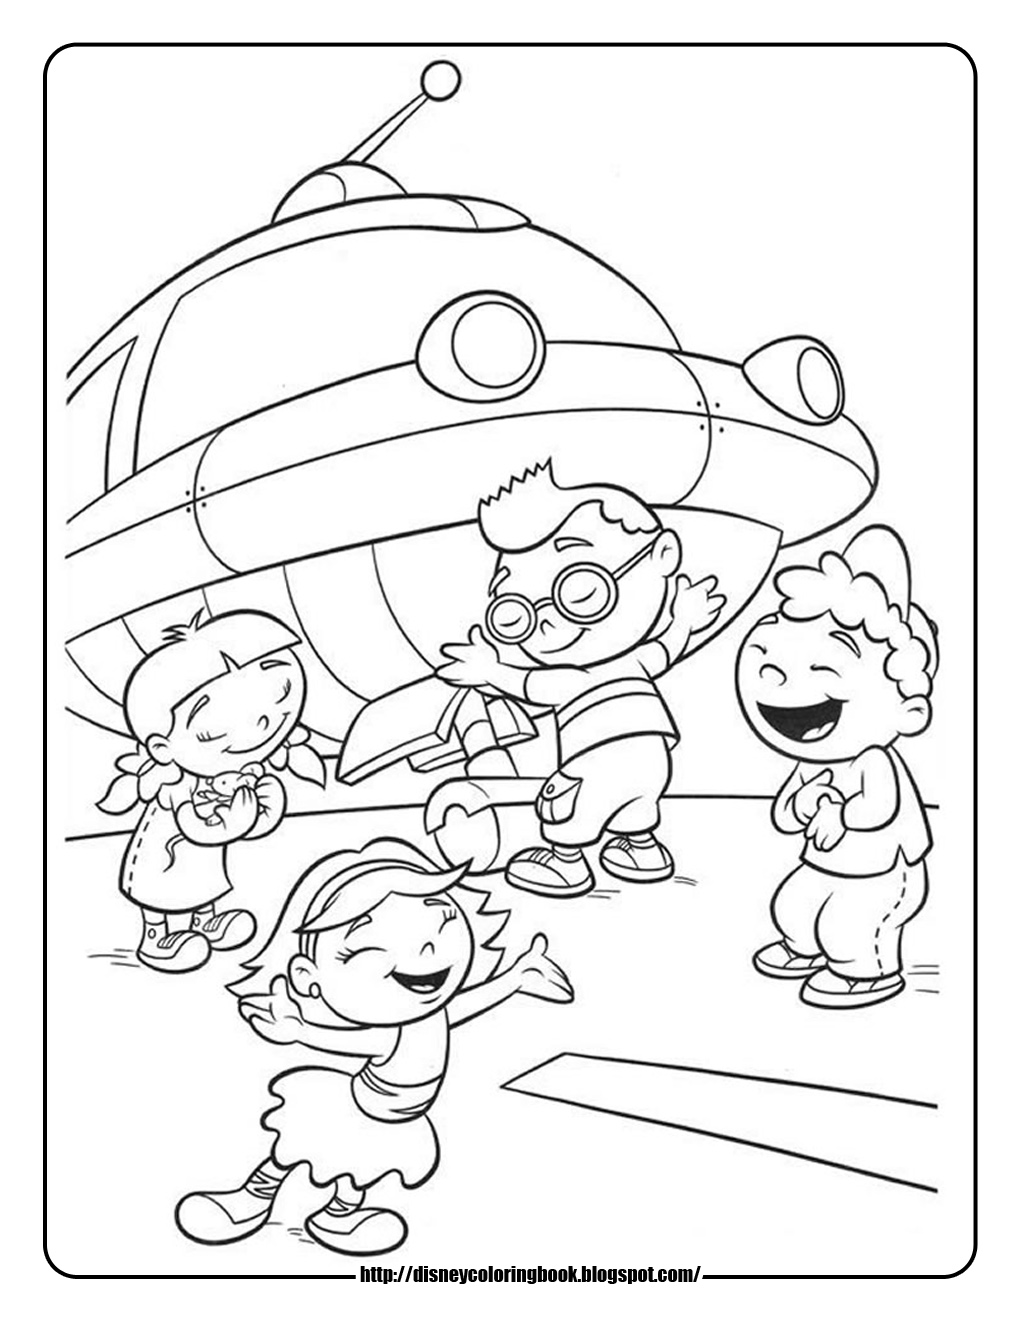 little einsteins coloring pages - Free Printable Little Einsteins Coloring Pages & Craft Sheets